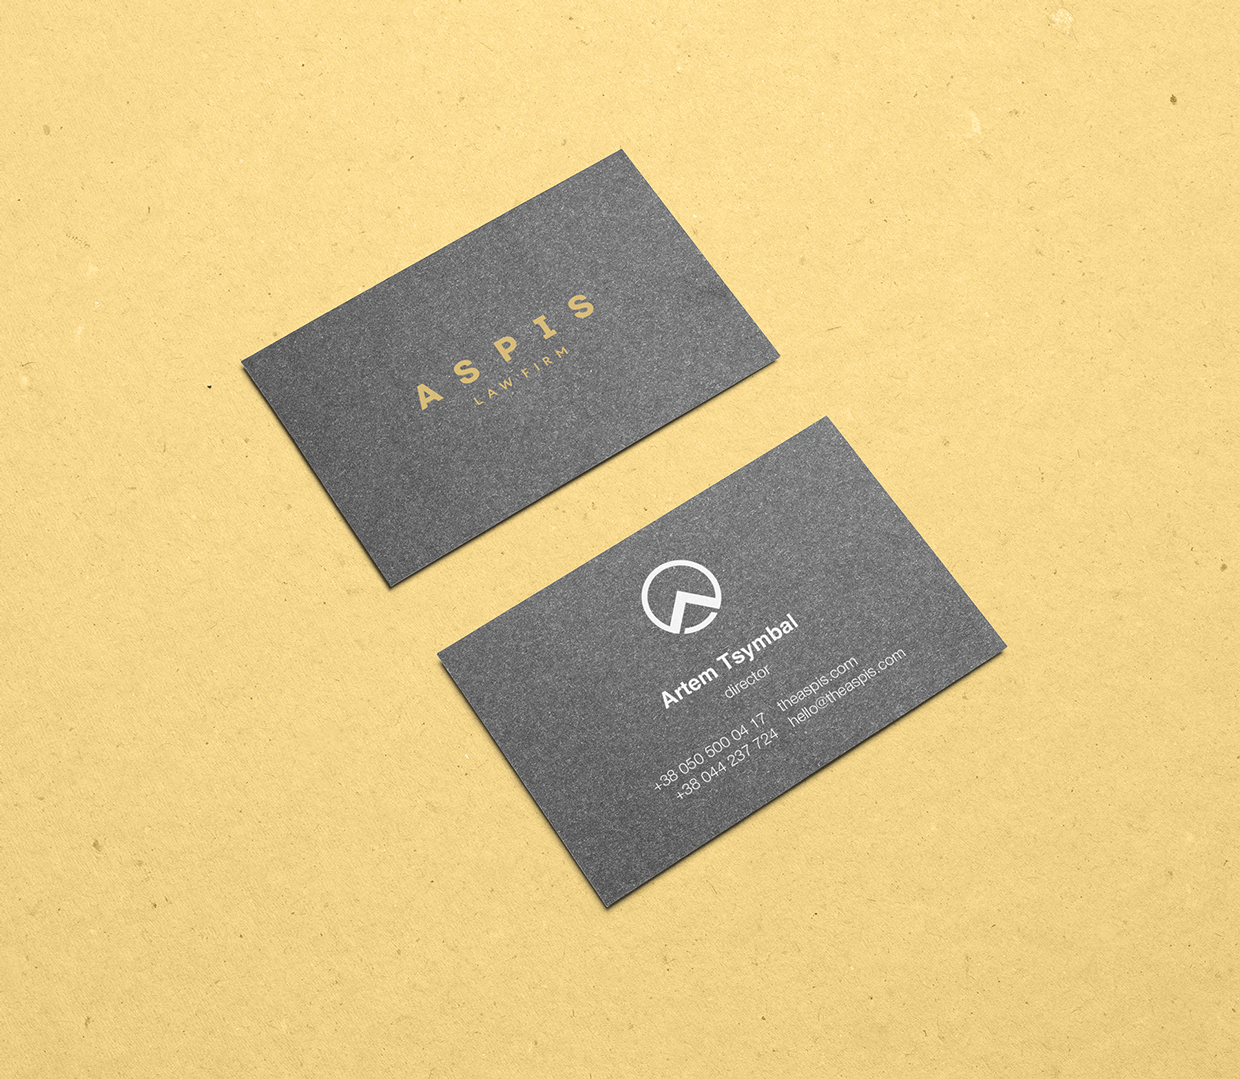 Aspis law firm branding